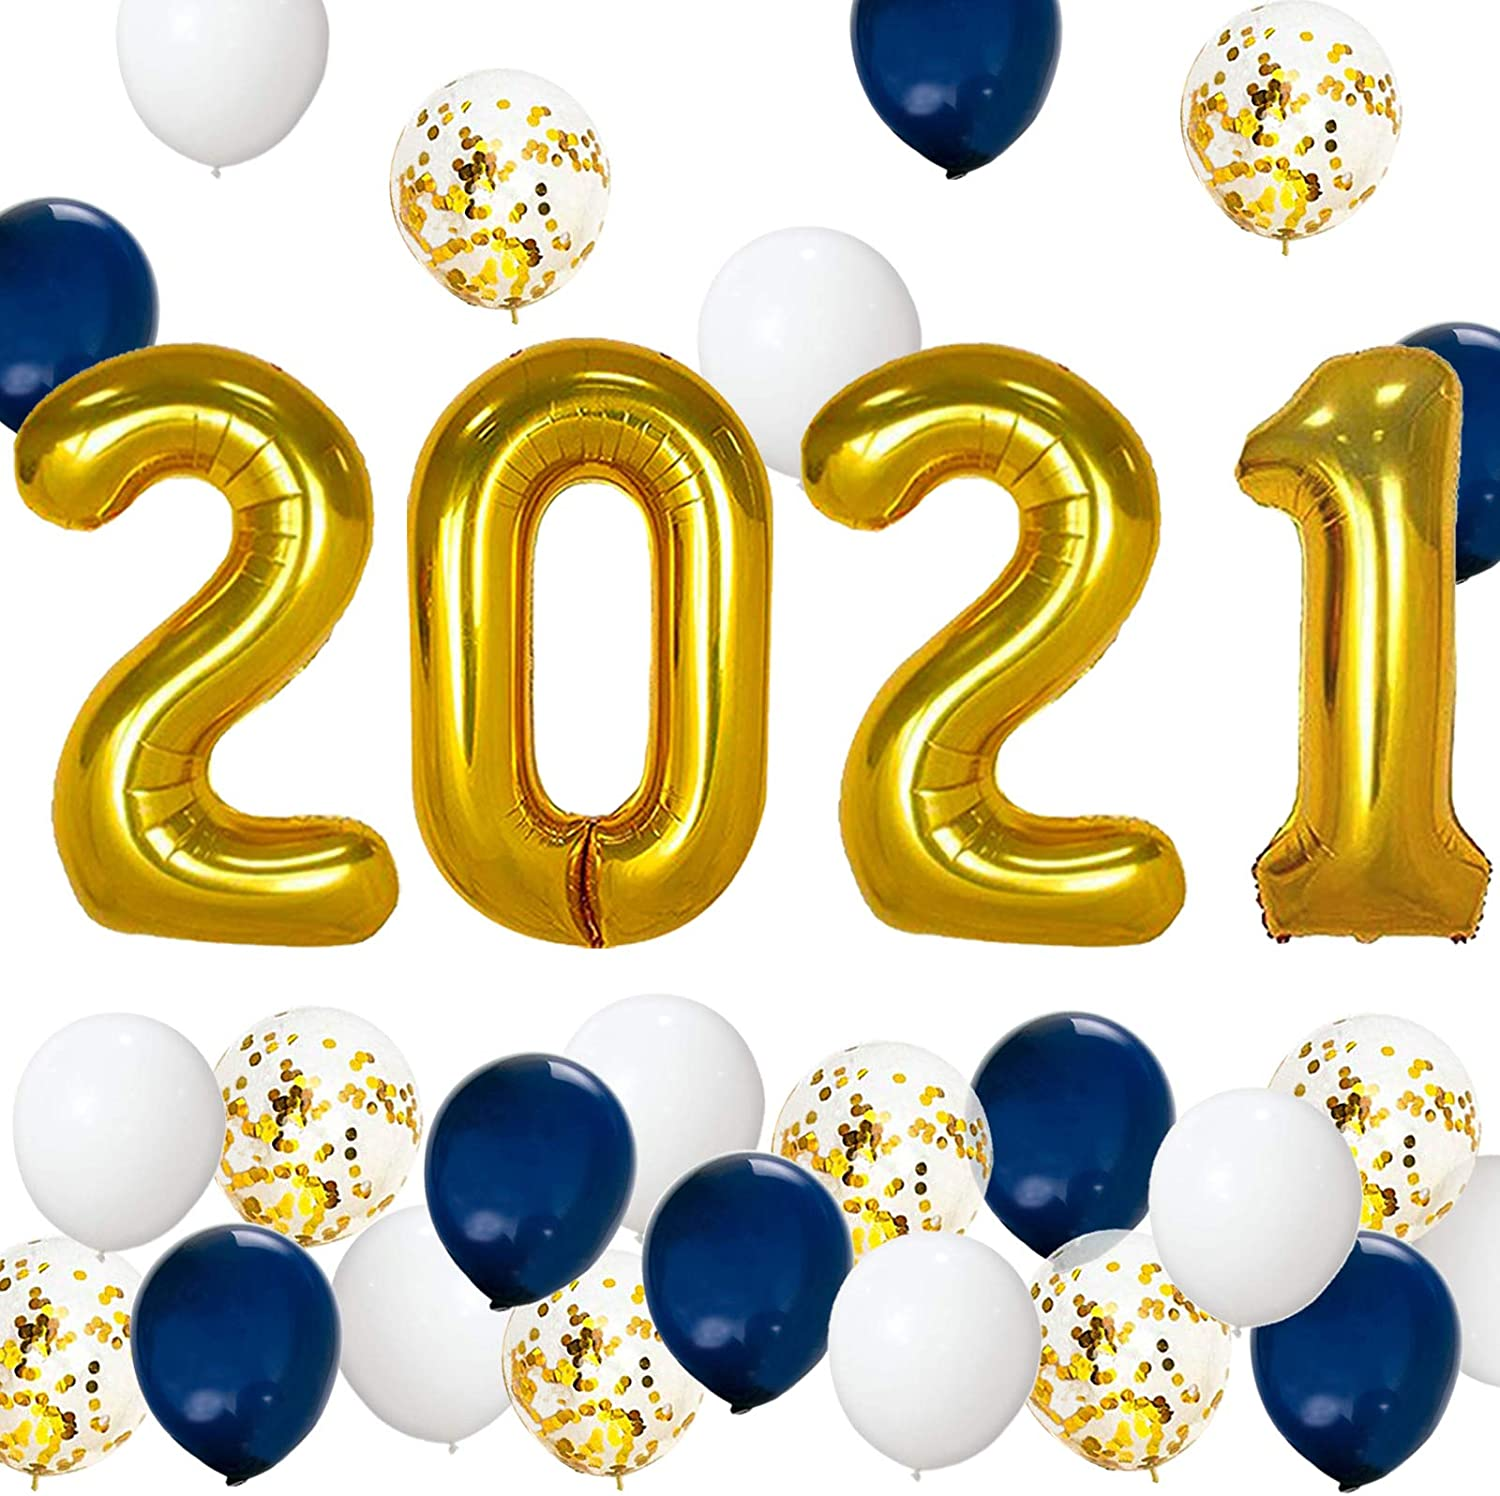 Graduation Party Supplies 2021 Decorations Kit, Gold 2021 Balloons, Navy Blue Gold and White Balloons Set, Navy Blue and Gold Graduation Decorations 2021